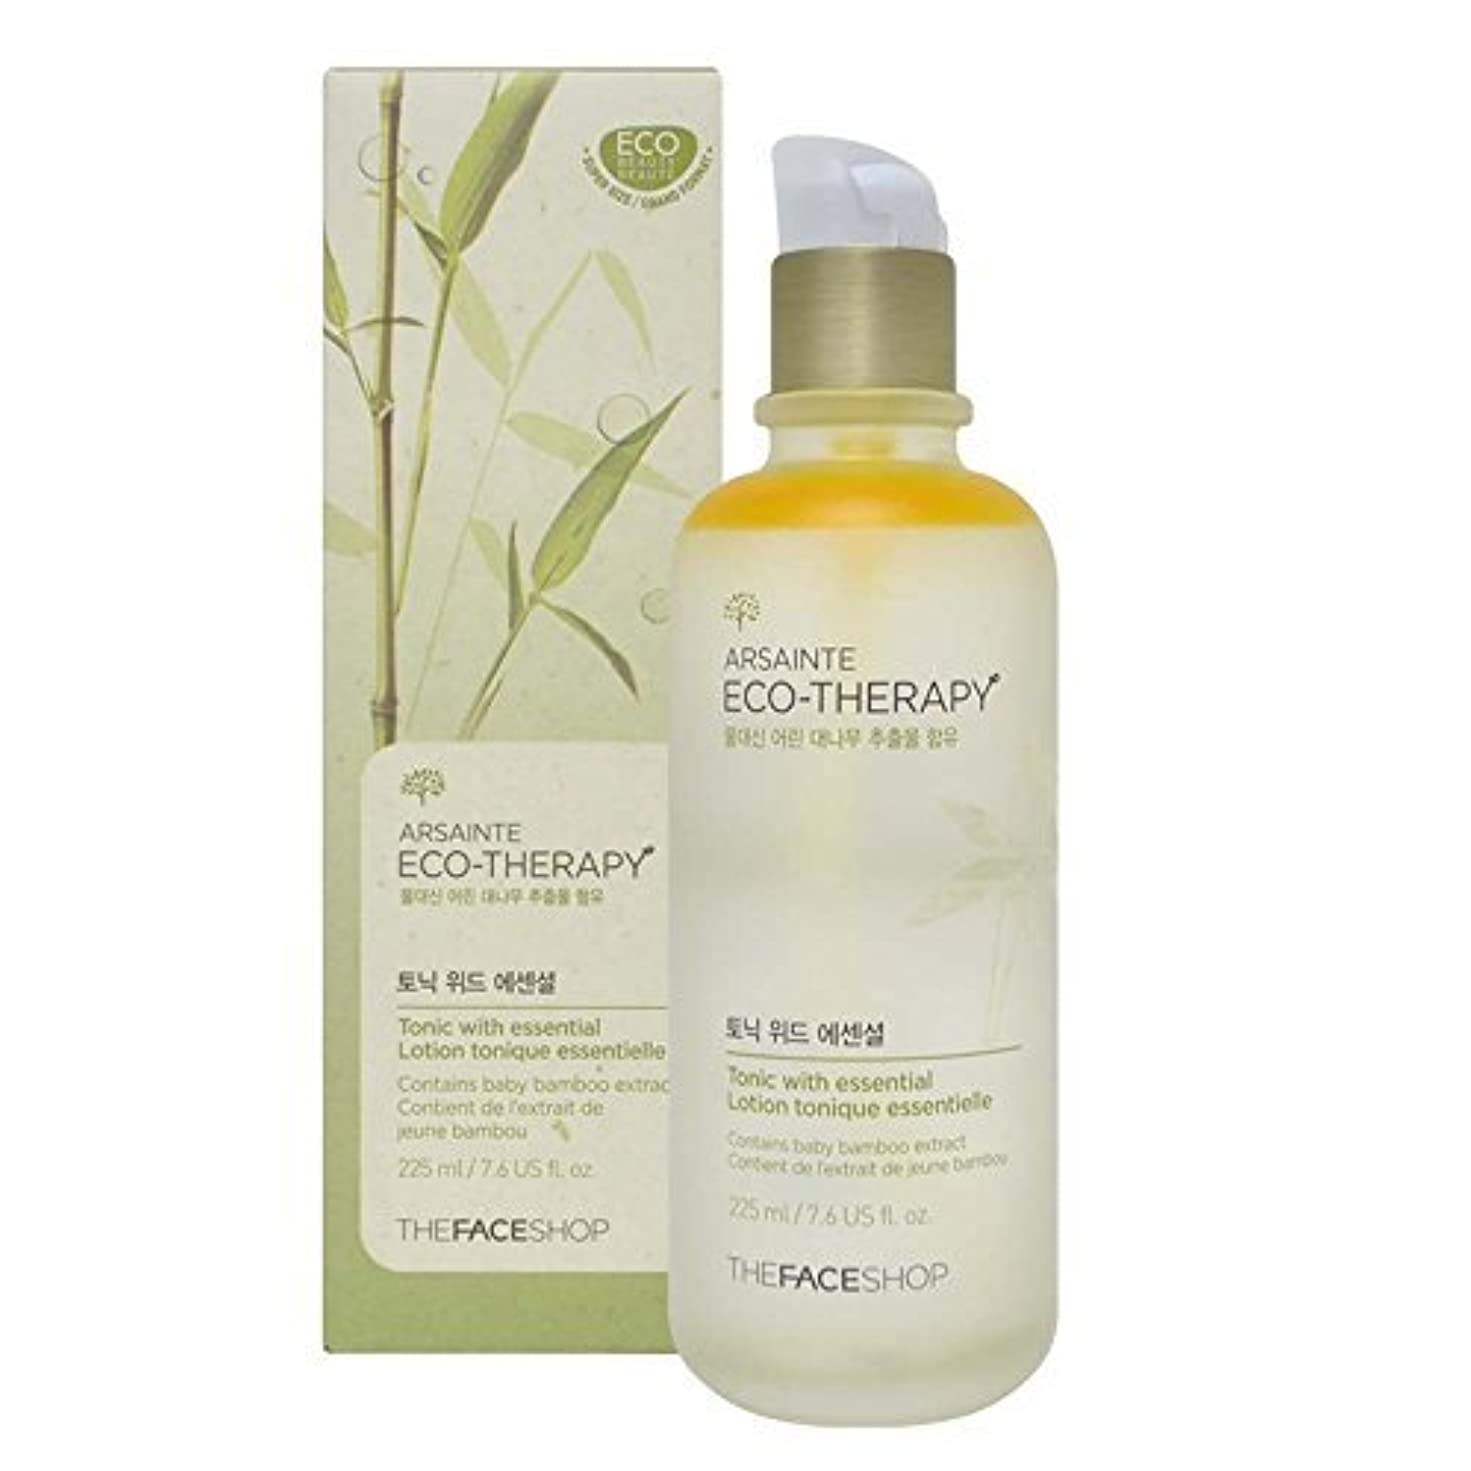 同様にモバイルレイThe Face shop Arsainte Ecotheraphy Tonic with essential Big Size 225ml [並行輸入品]